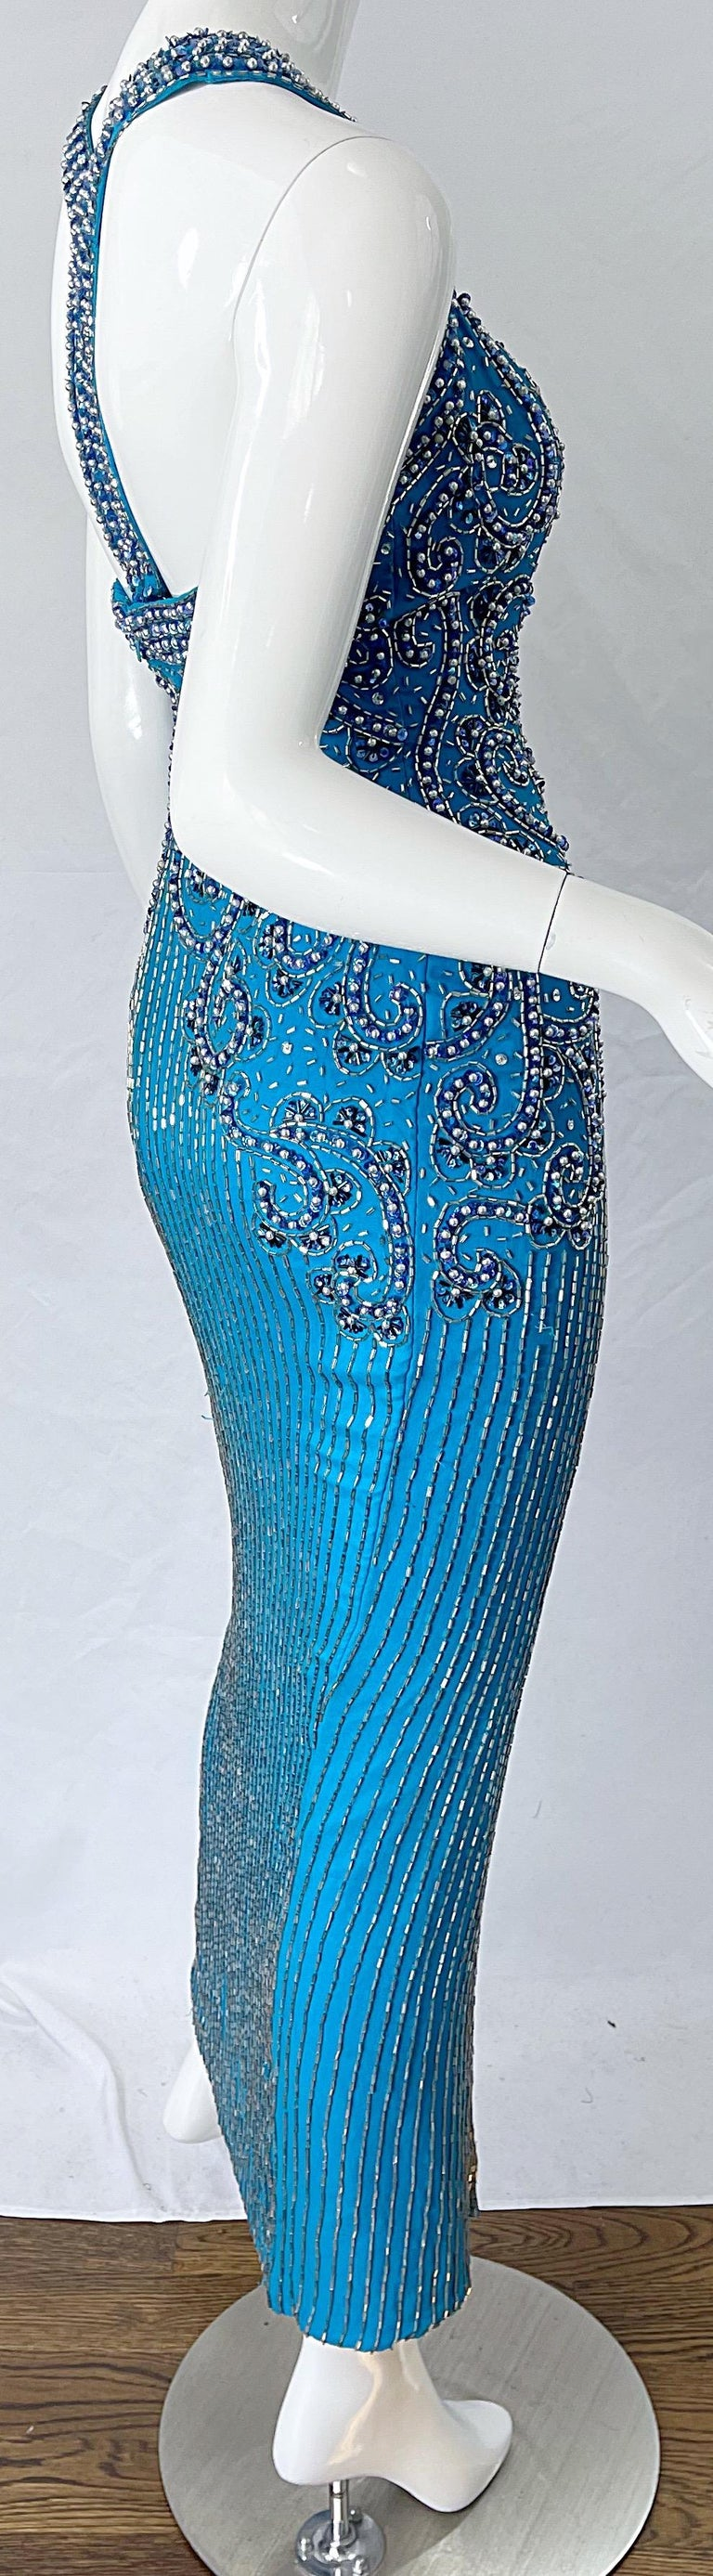 1980s Ted Lapidus Size 6 Turquoise Blue Silk Beaded Sequin Vintage 80s Gown For Sale 6